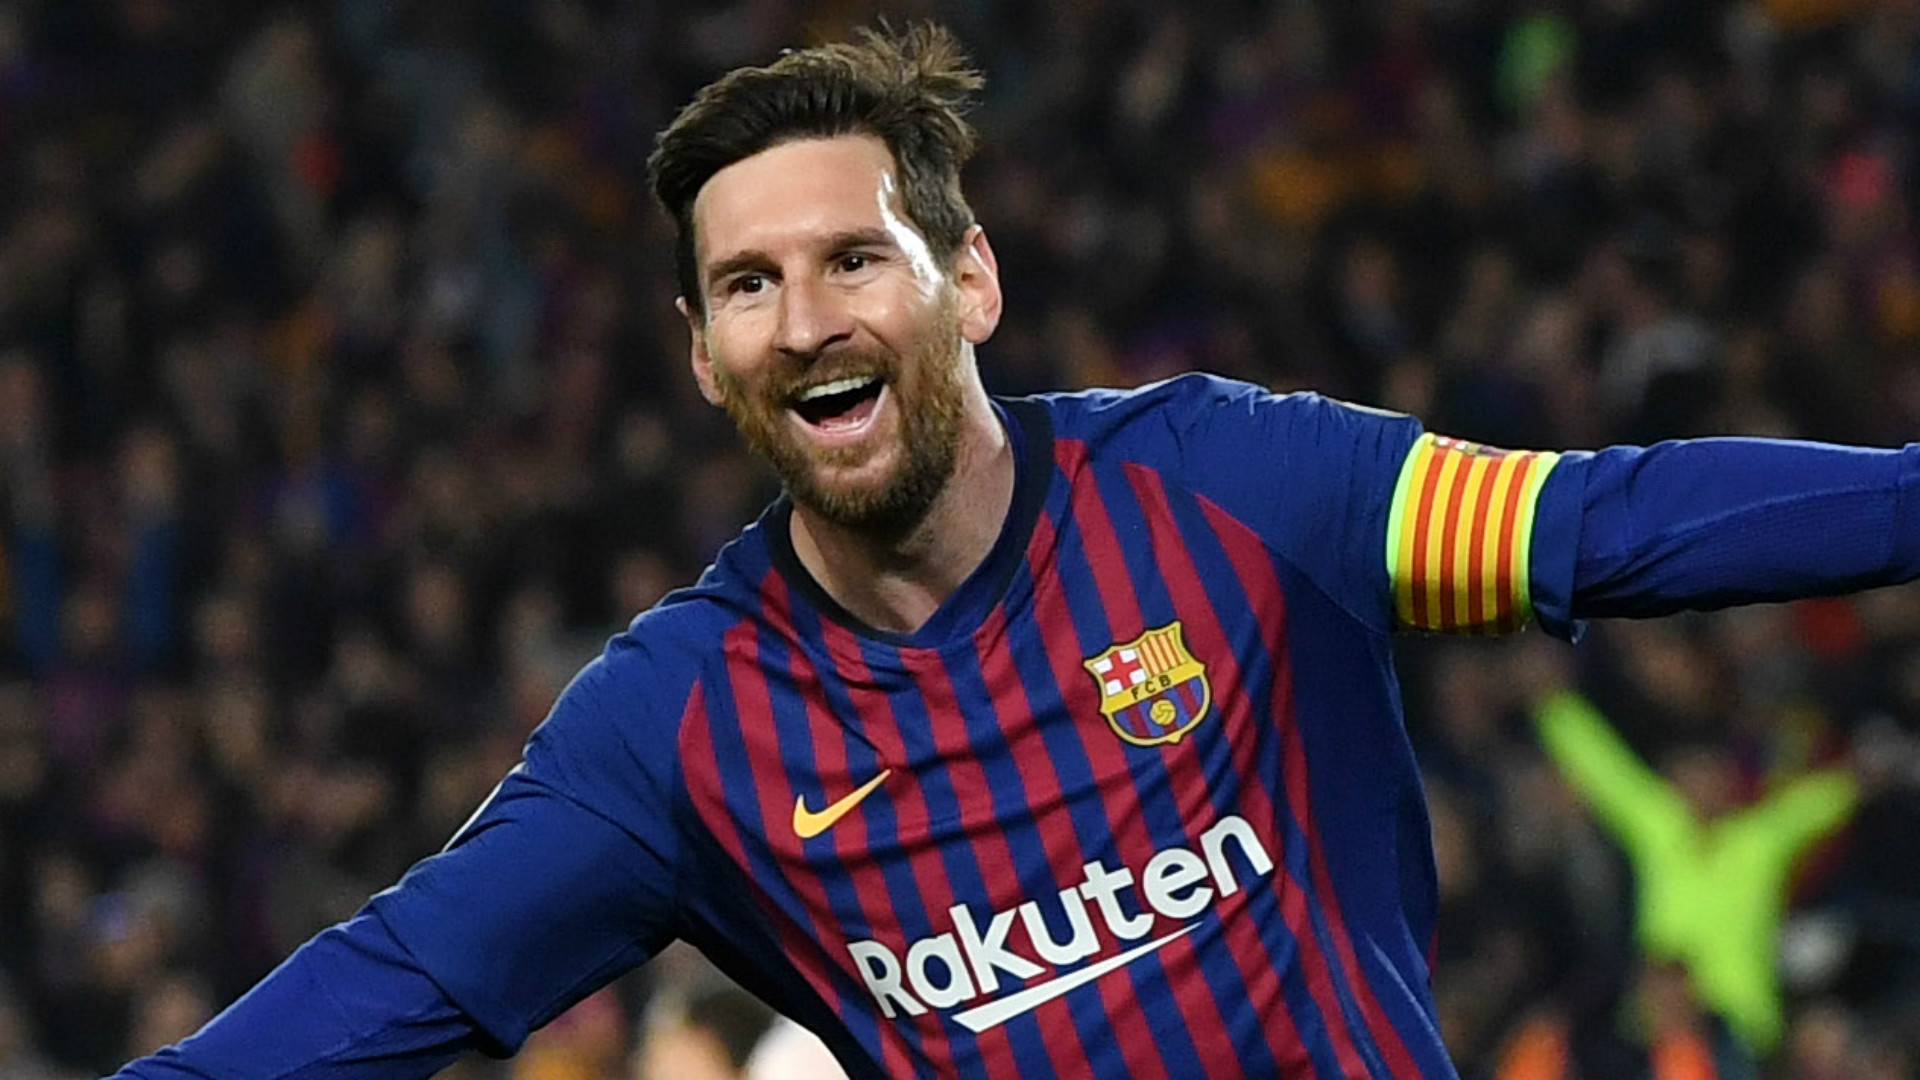 VIDEO: Lionel Messi, Matthijs de Ligt, Heung-Min Son and Roberto Firmino - The UEFA Champions League Player of the Week Nominees